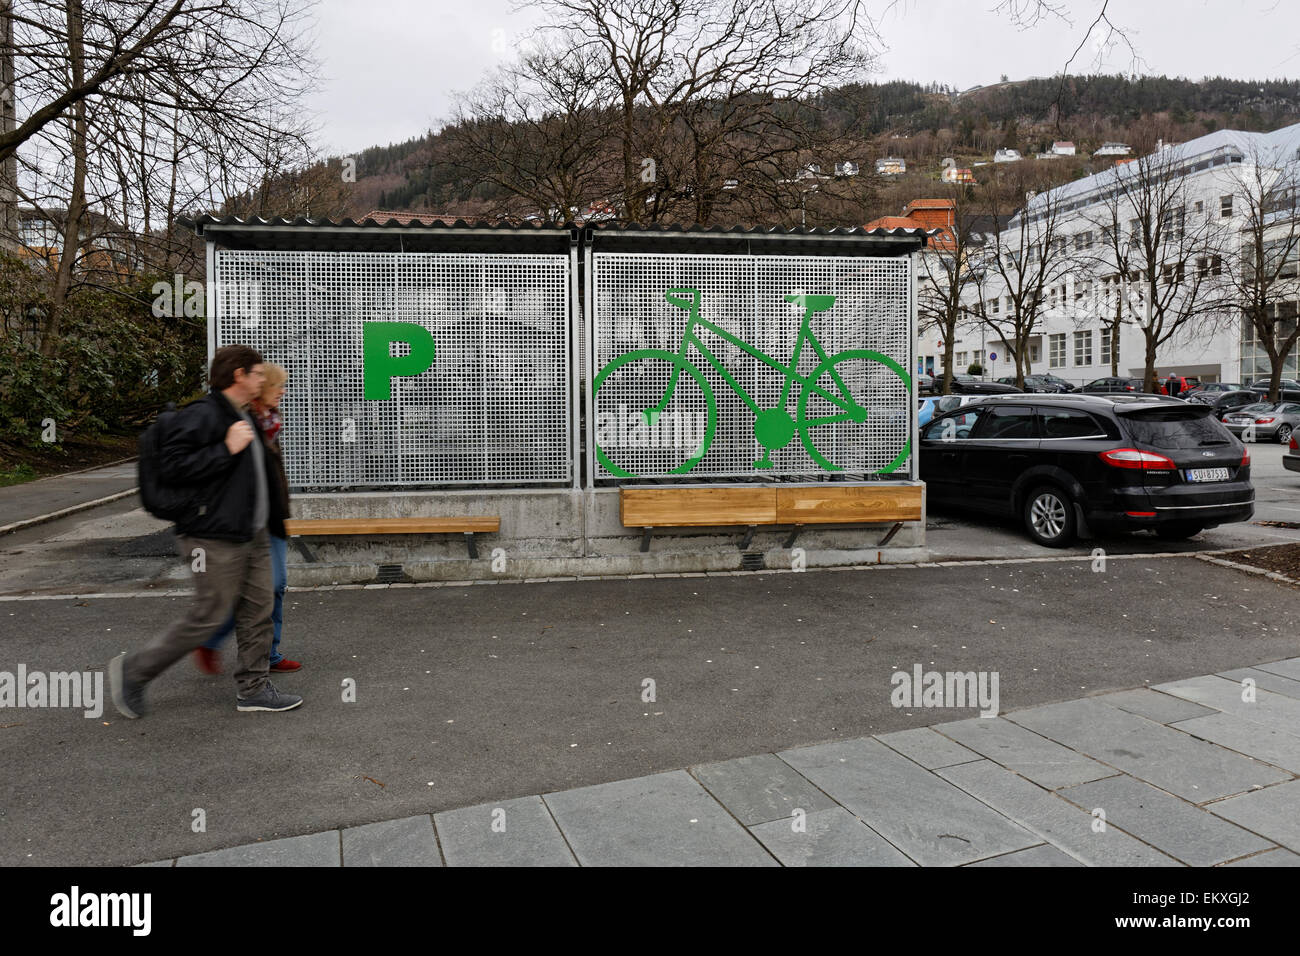 Safe parking place for cycles, Bergen, Norway. - Stock Image